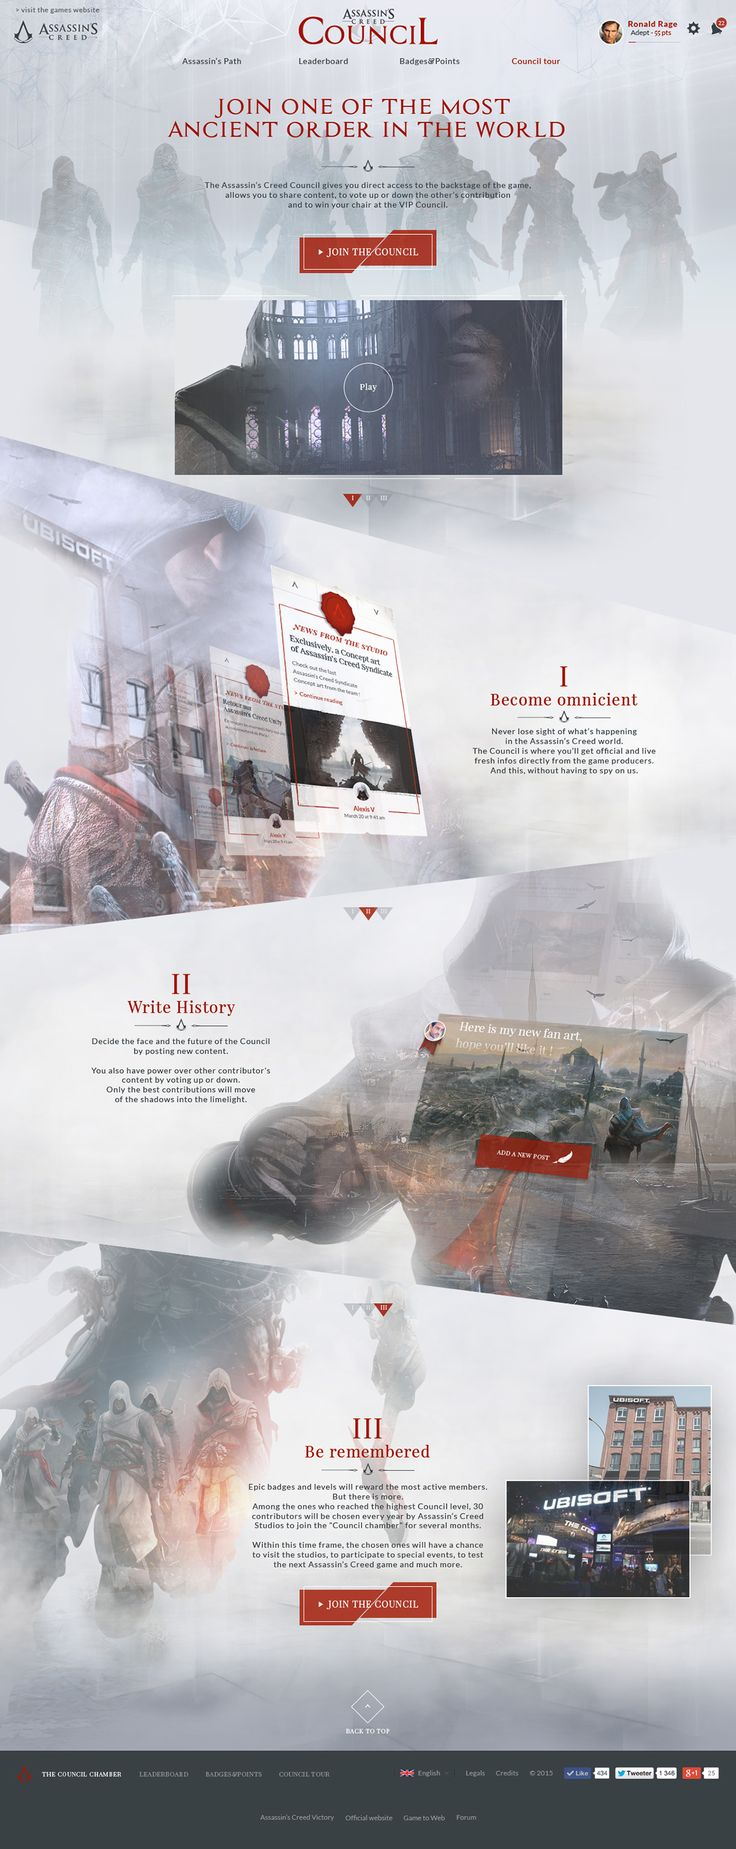 Assassin's Creed Council on Behance